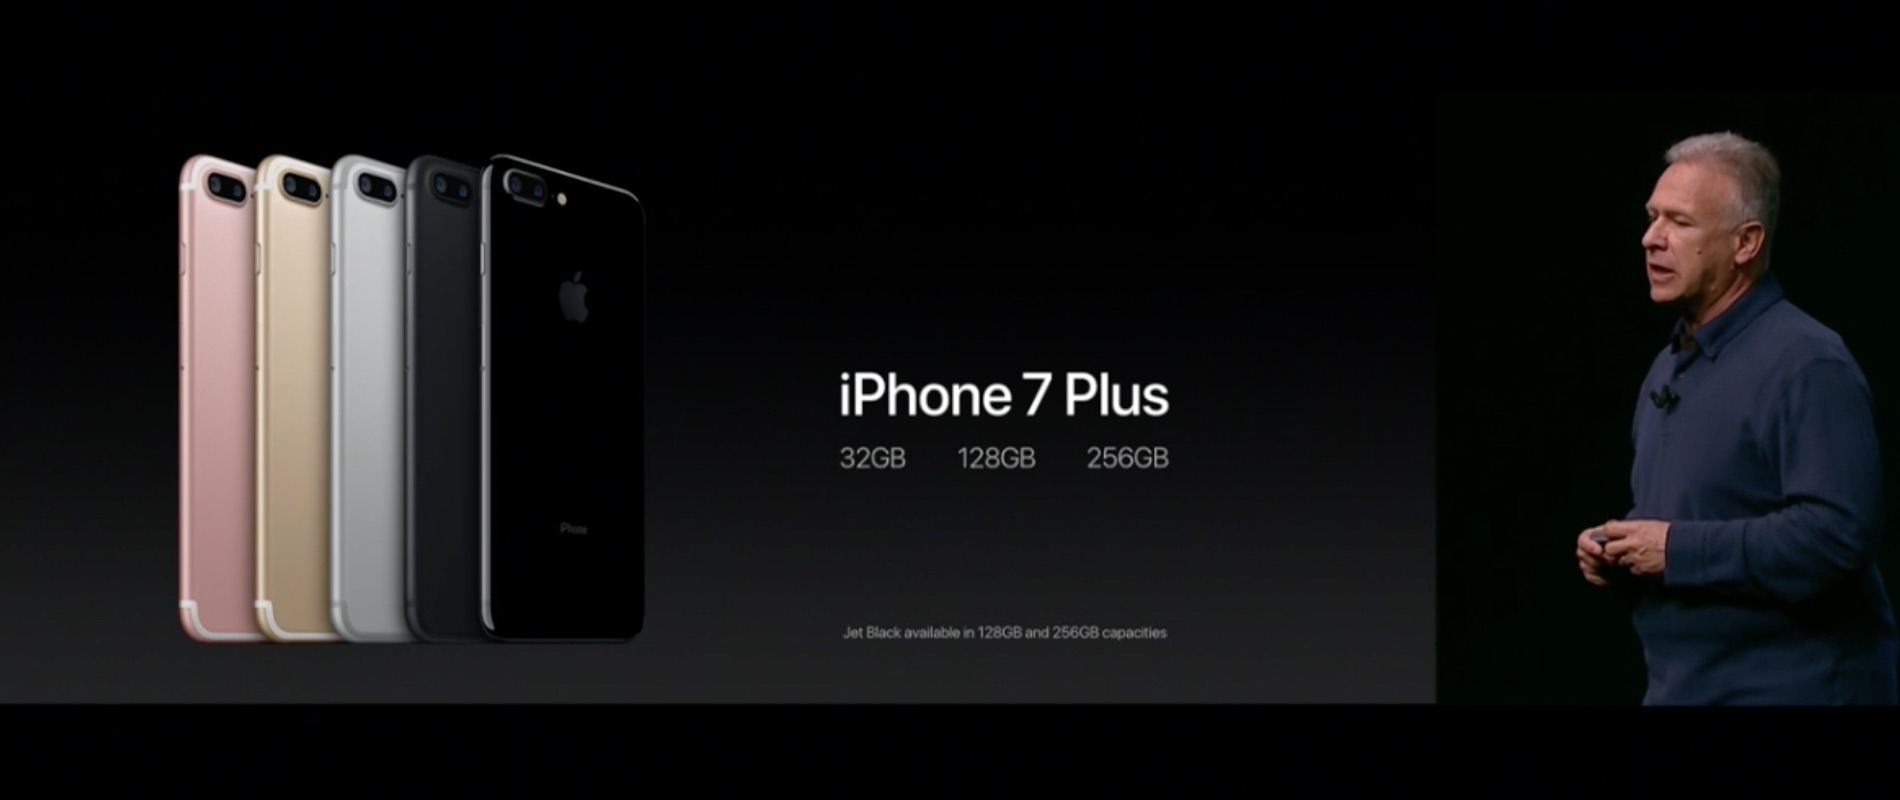 iphone7-plus-special-events-2016-sep-40